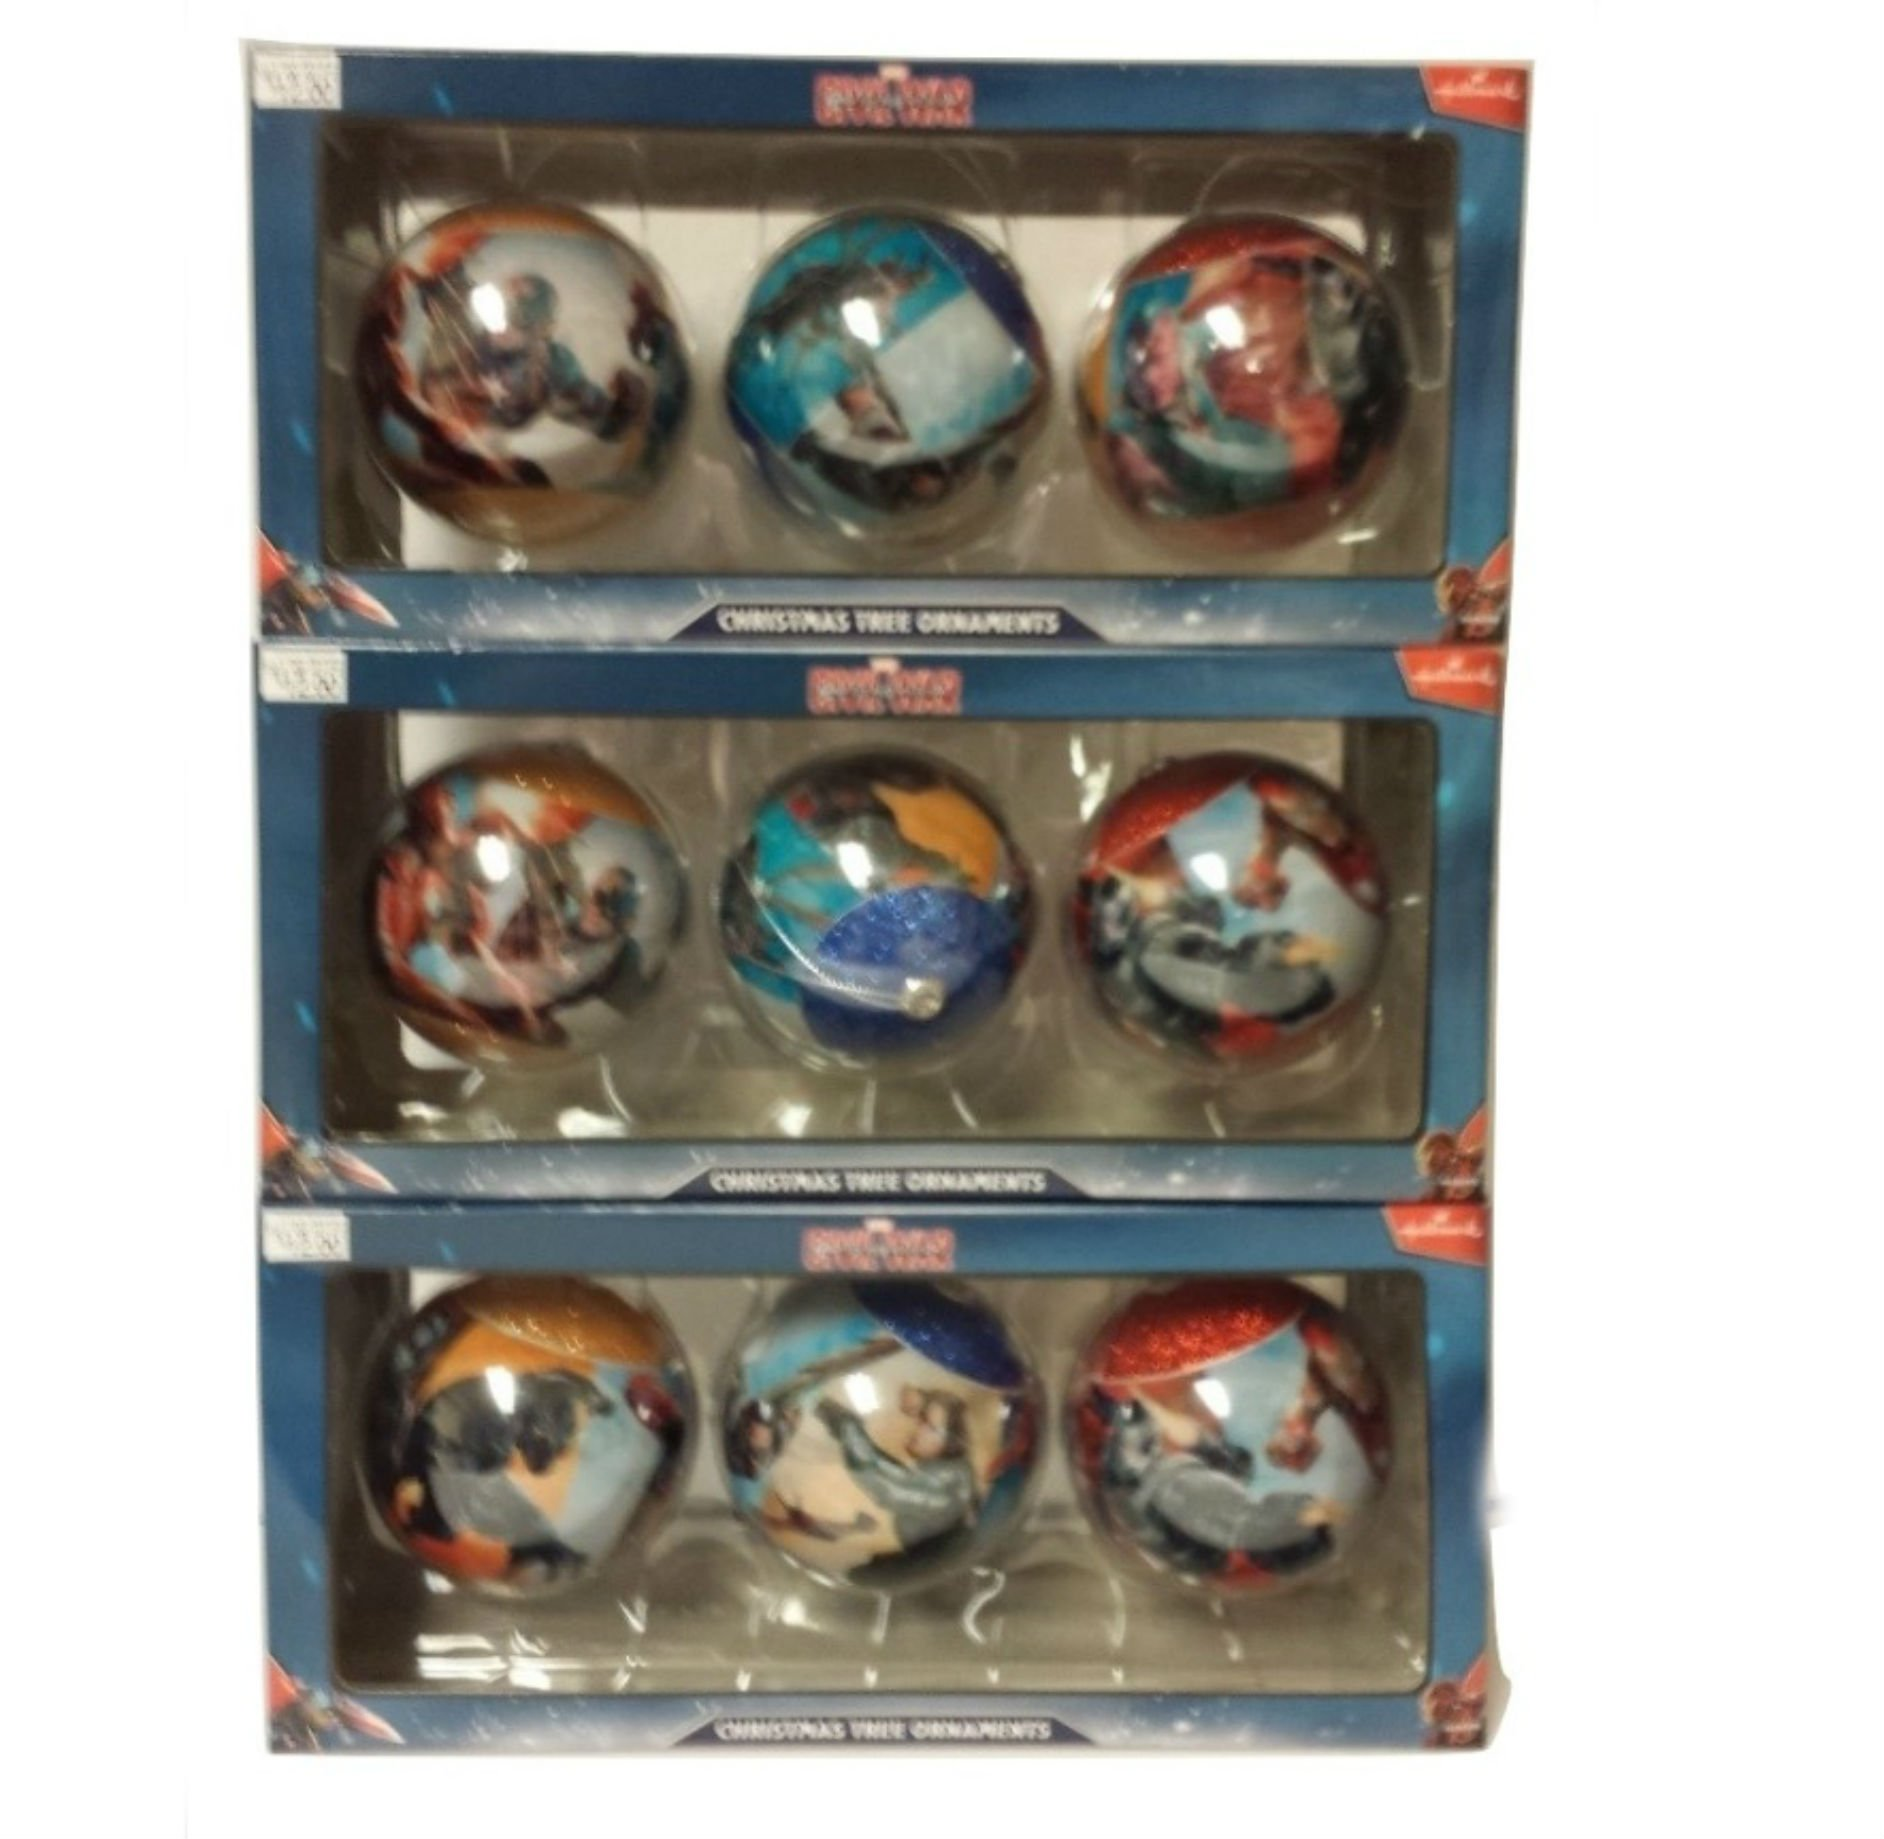 ELWF Marvel Avengers Civil War Captain America Christmas Ball Ornaments 9-pack by Hallmark